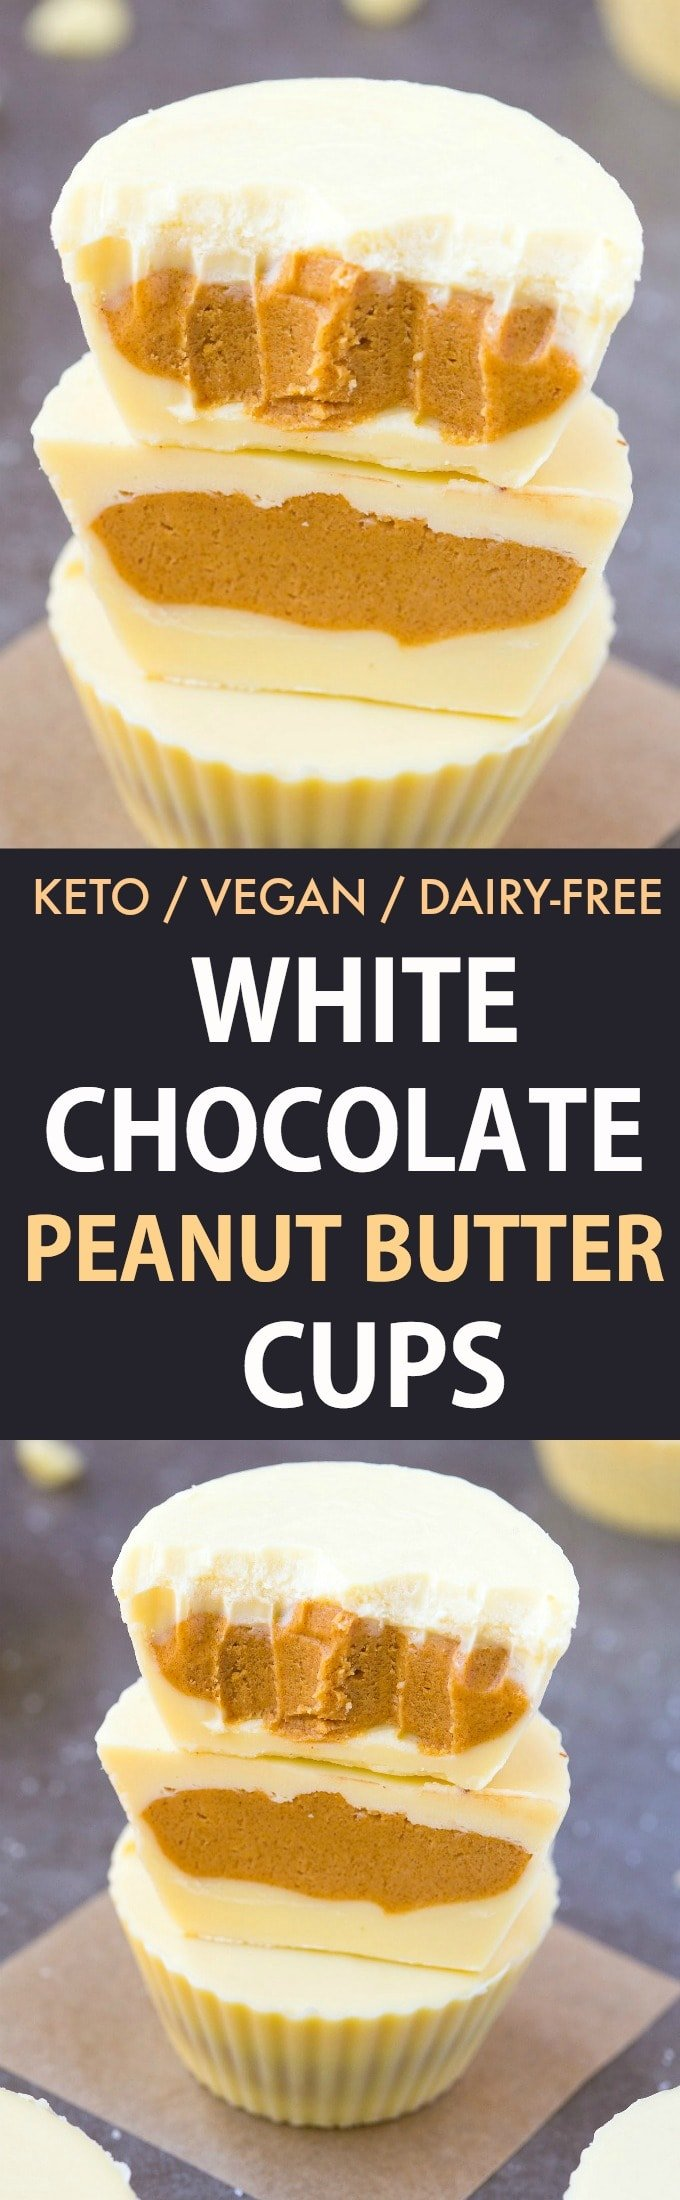 Keto Vegan White Chocolate Peanut Butter Cups- Reese's white chocolate peanut butter cups gets a keto, sugar-free and dairy-free makeover! A creamy, peanut butter filling covered in dairy-free, vegan and keto white chocolate! Nut-Free and Paleo option too! #ketogenic #ketodessert #vegandessert #vegancandy #peanutbutter #homemadecandy